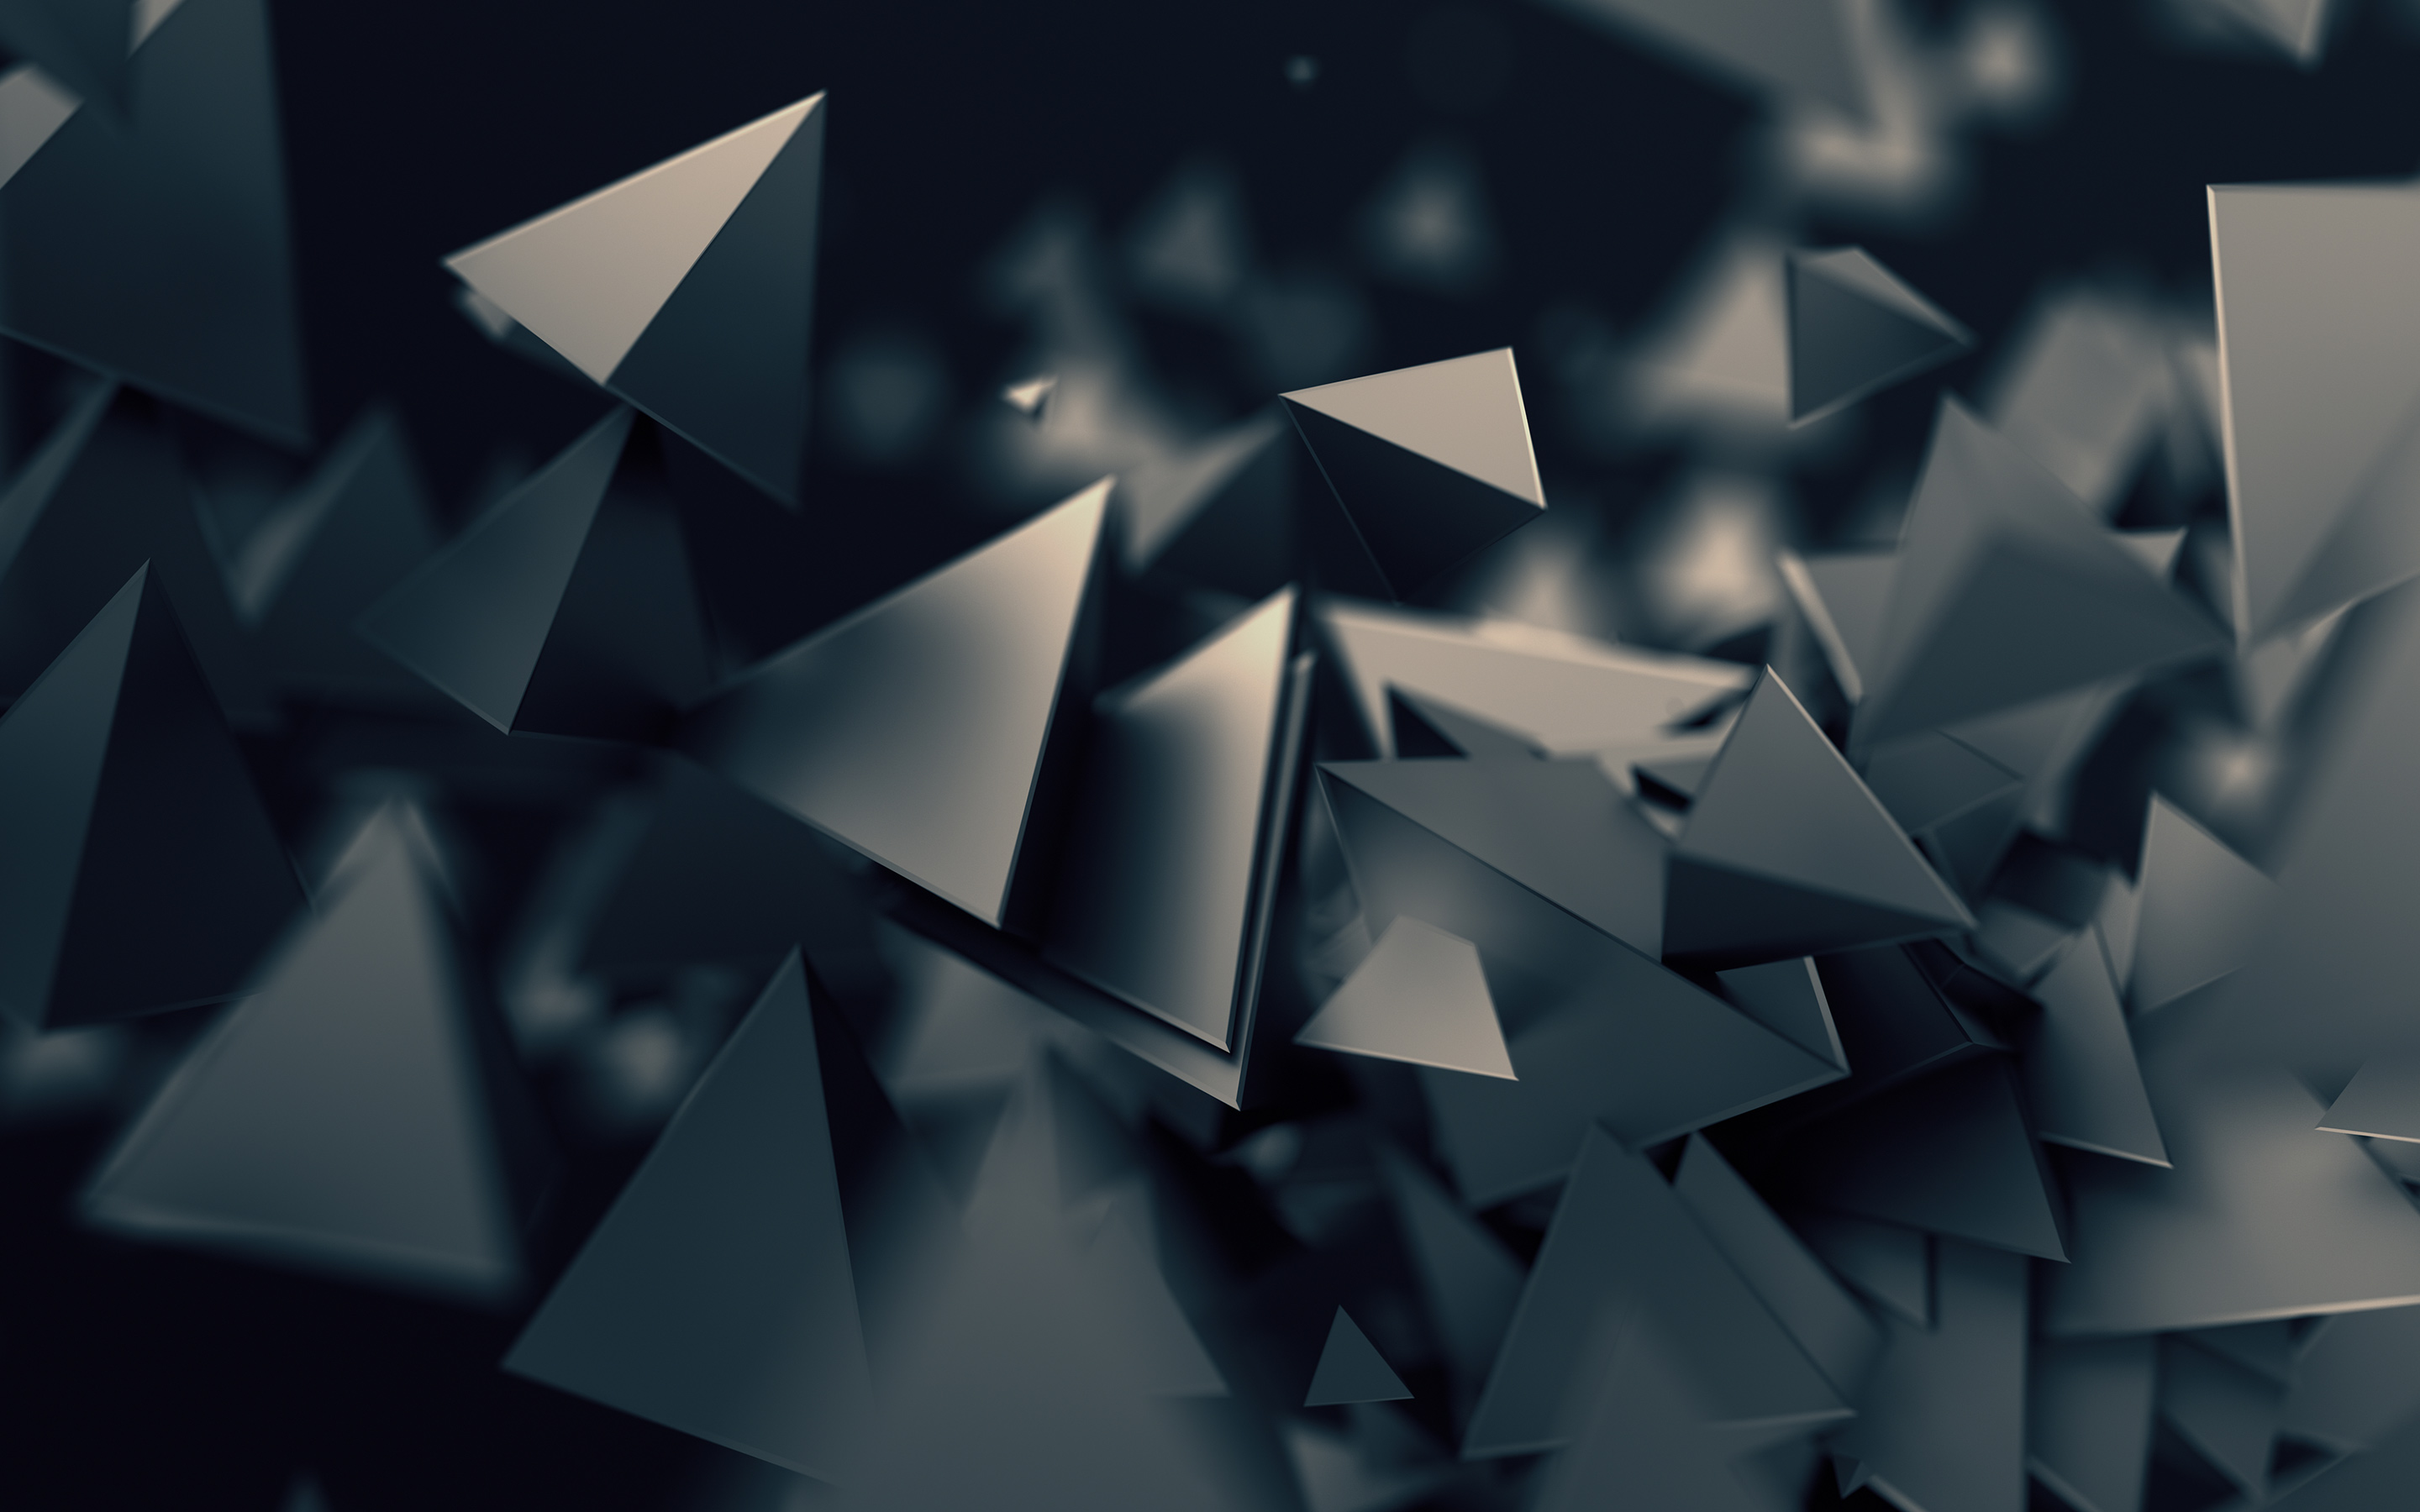 3D Triangles Dark684948181 - 3D Triangles Dark - Triangles, Illusion, Dark